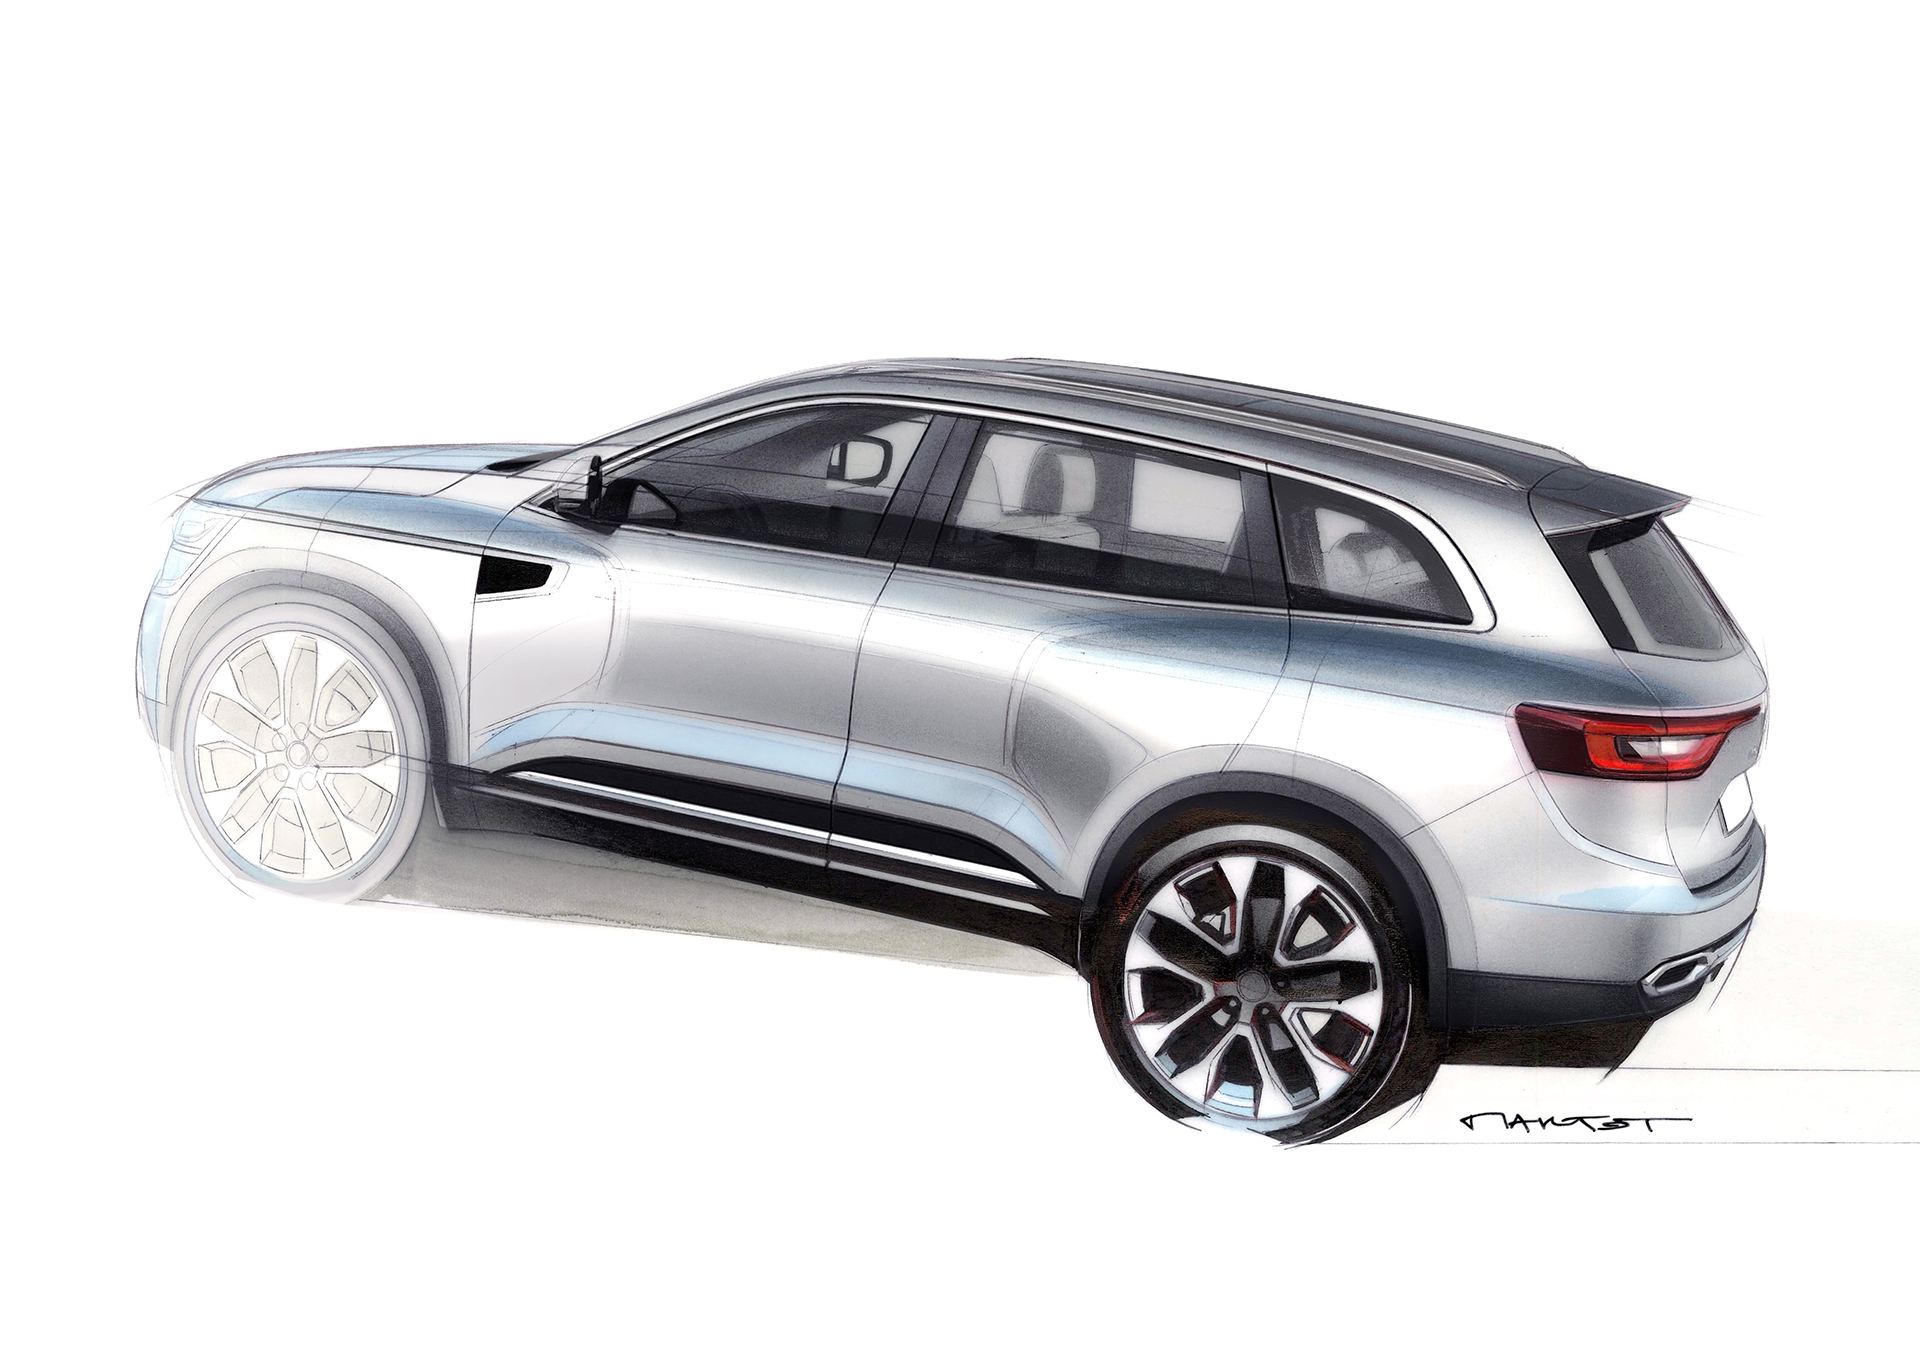 Renault Koleos - 2016 - side-face sketch by Alexis Martot - Renault Design